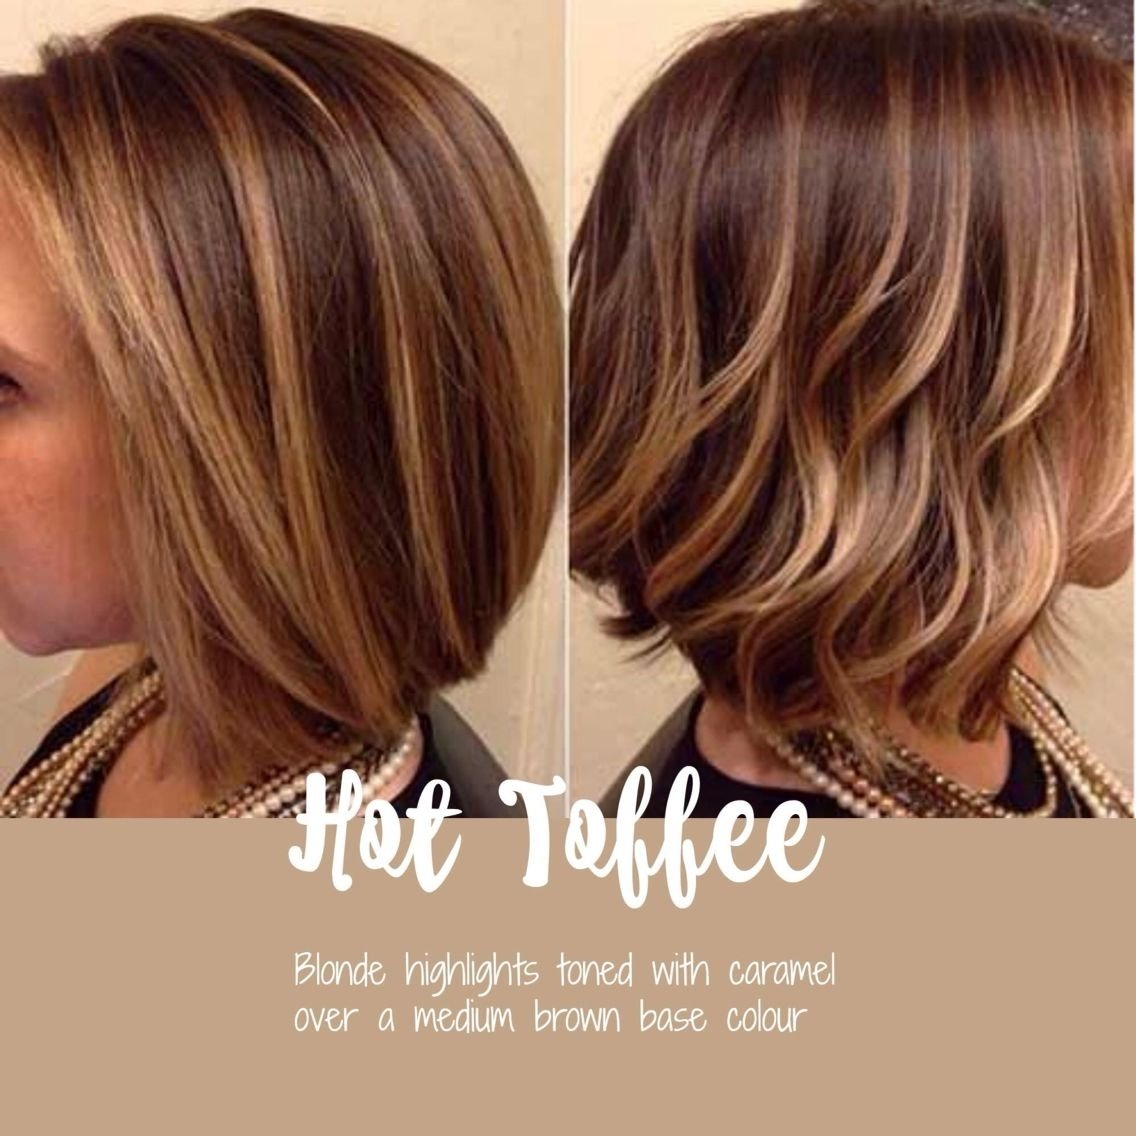 10 Stunning Hair Color Ideas For Bob Hairstyles from rock your locks love this colour and cut hair styles and 2020